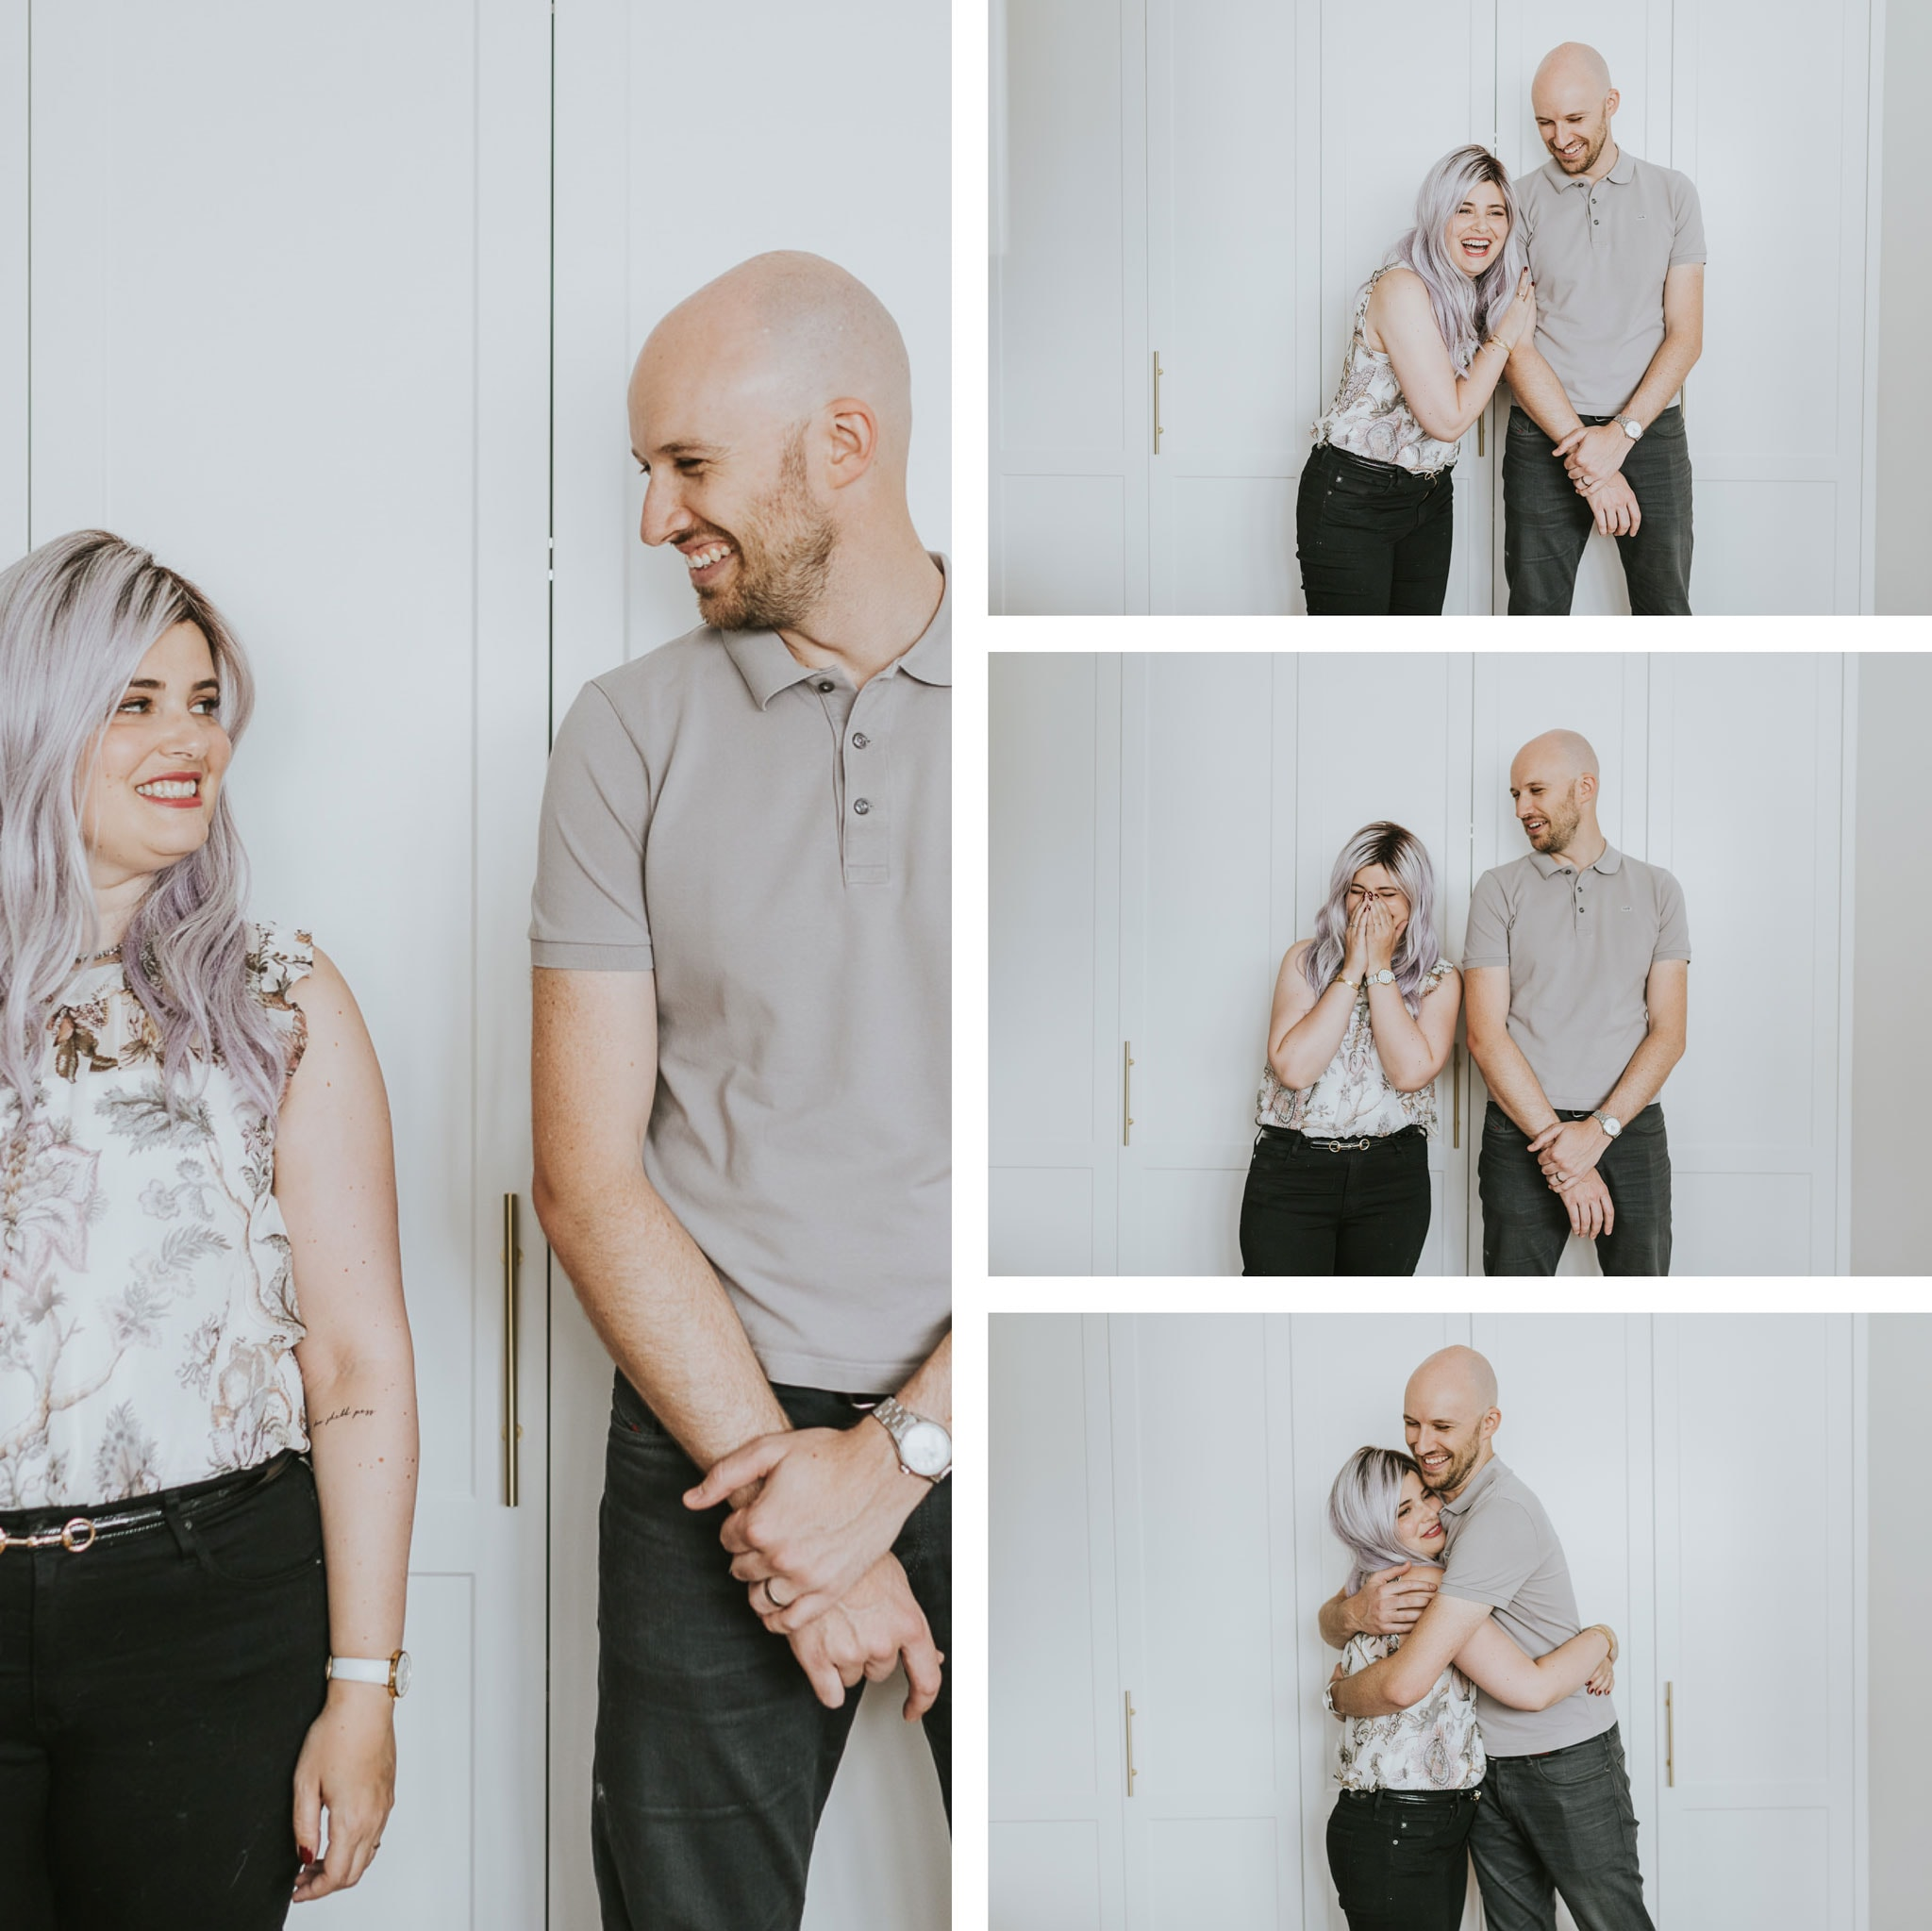 fun and candid photo portraits - rad and quirky photos for young couples